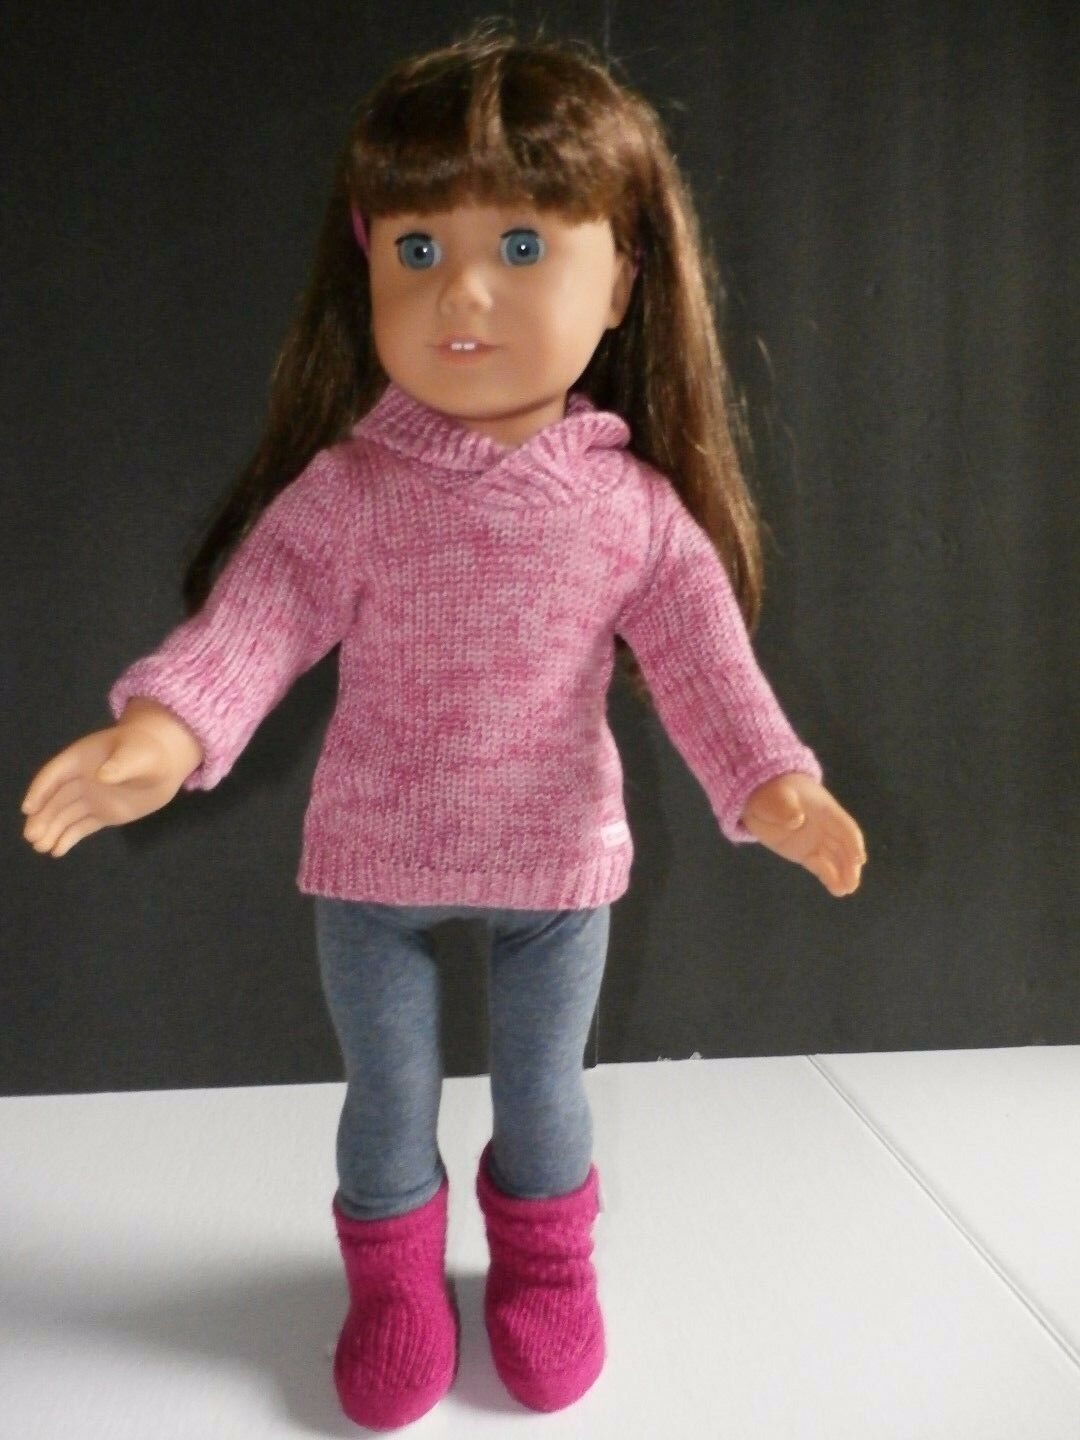 American Girl Doll JLY Truly Me Brunette azul Eyes + Cozy Sweater Outfit